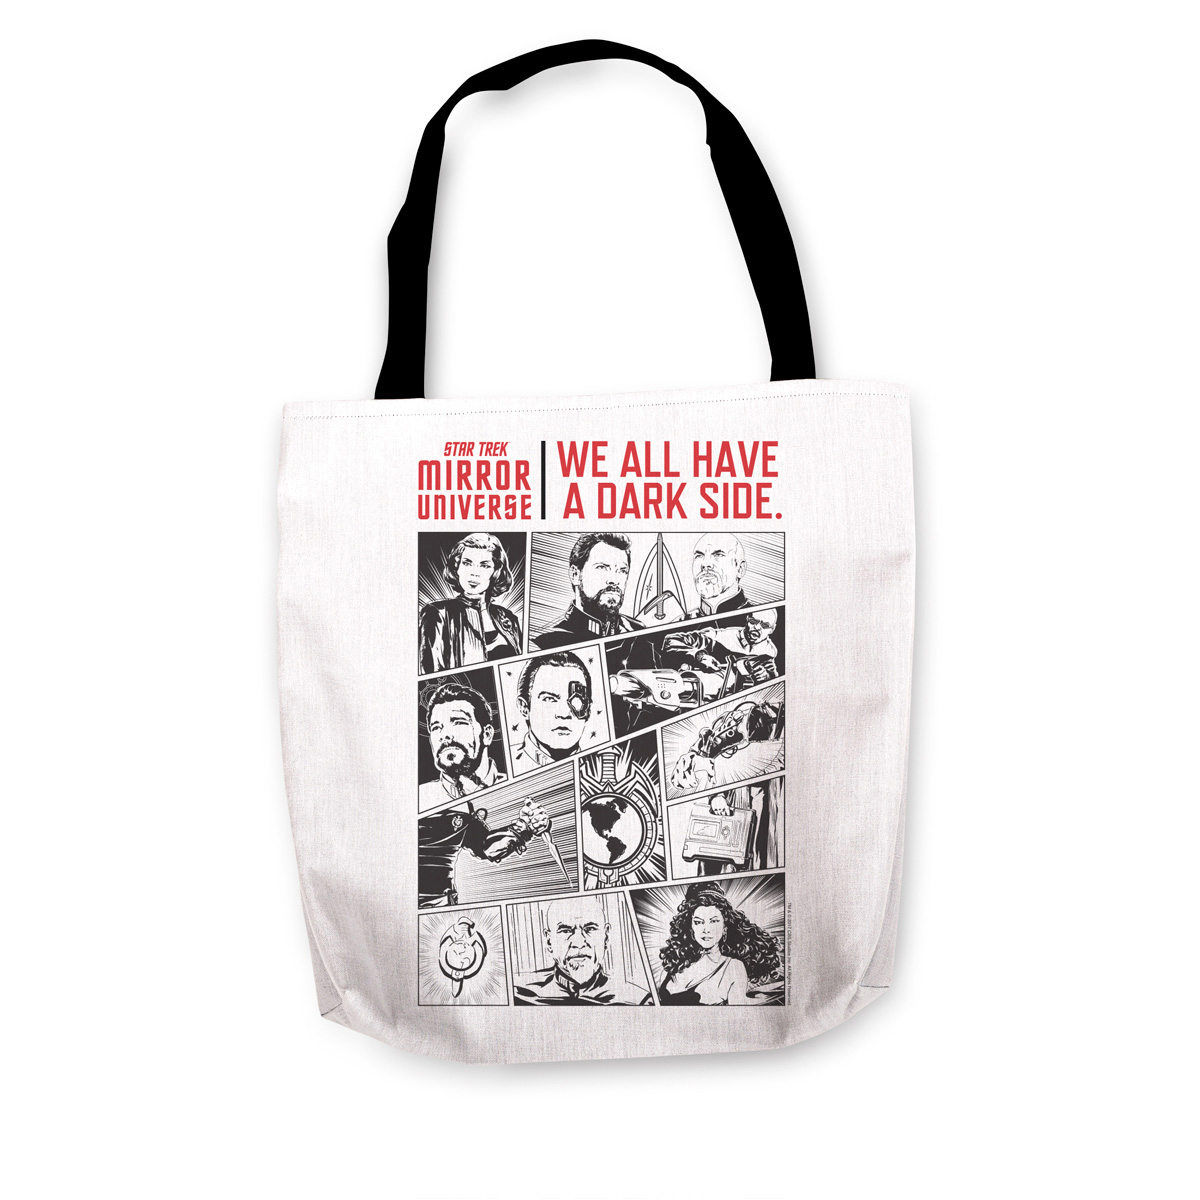 Star Trek Mirror Universe Darkside Tote